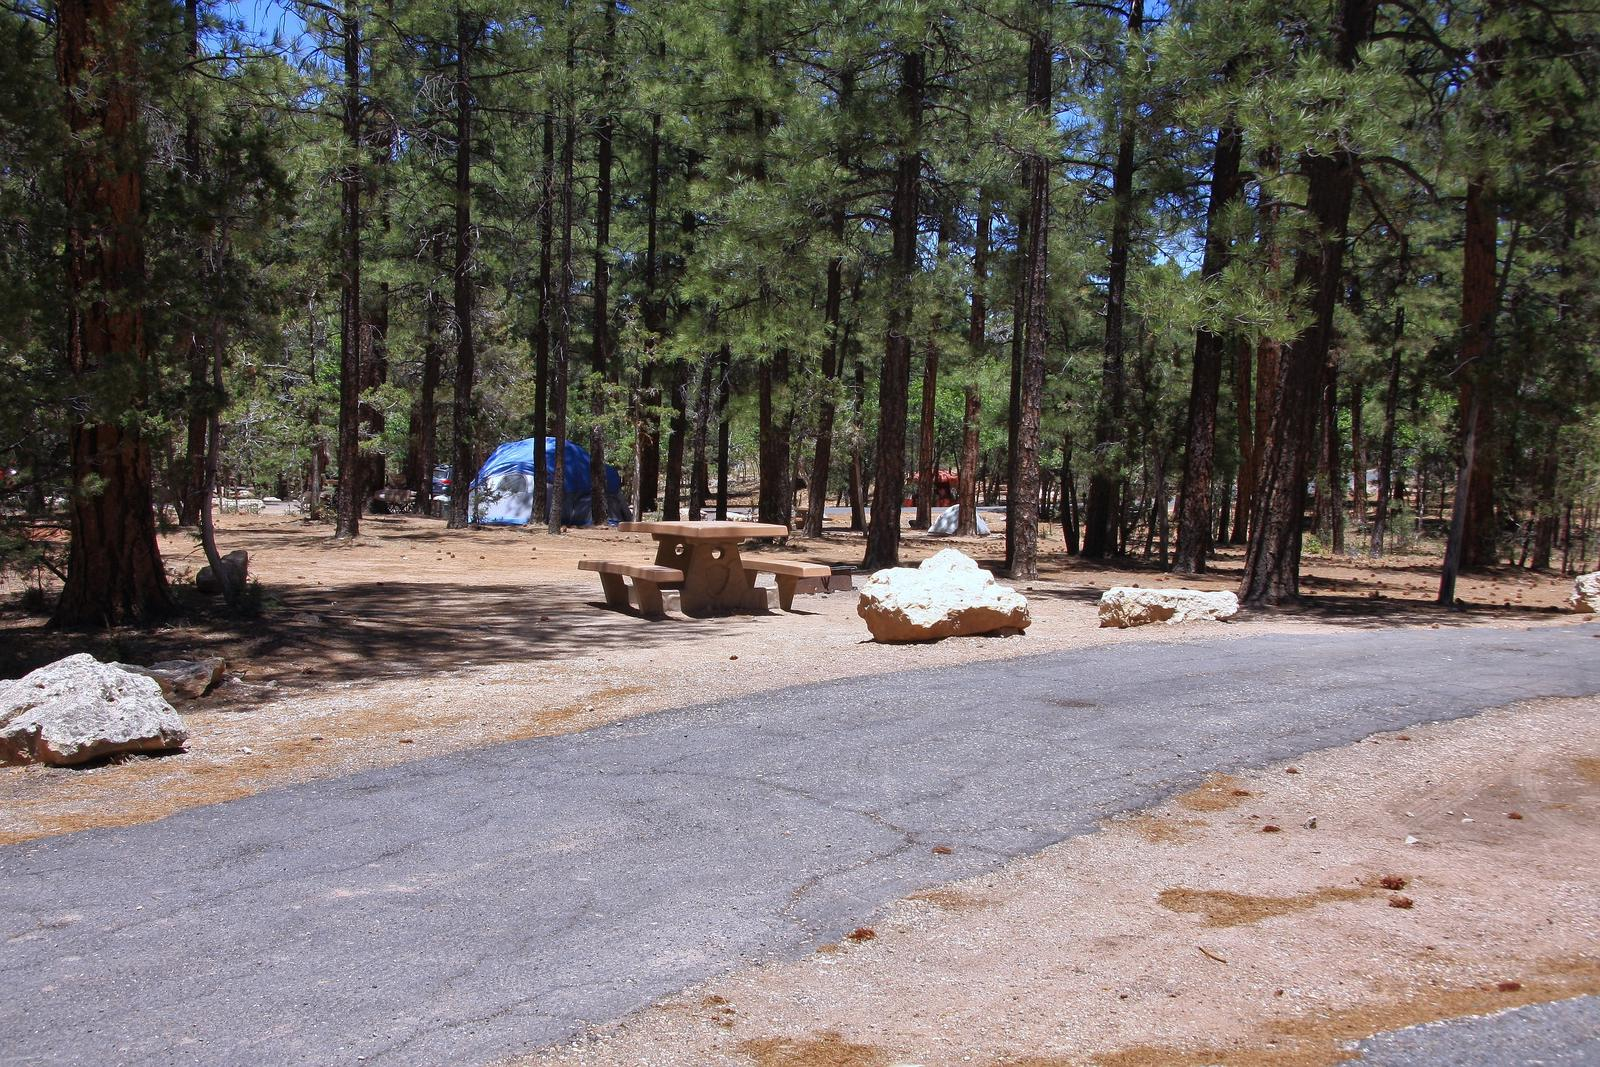 Picnic table, fire pit, and parking spot, Mather CampgroundPicnic table, fire pit, and parking spot for Fir Loop 64, Mather Campground